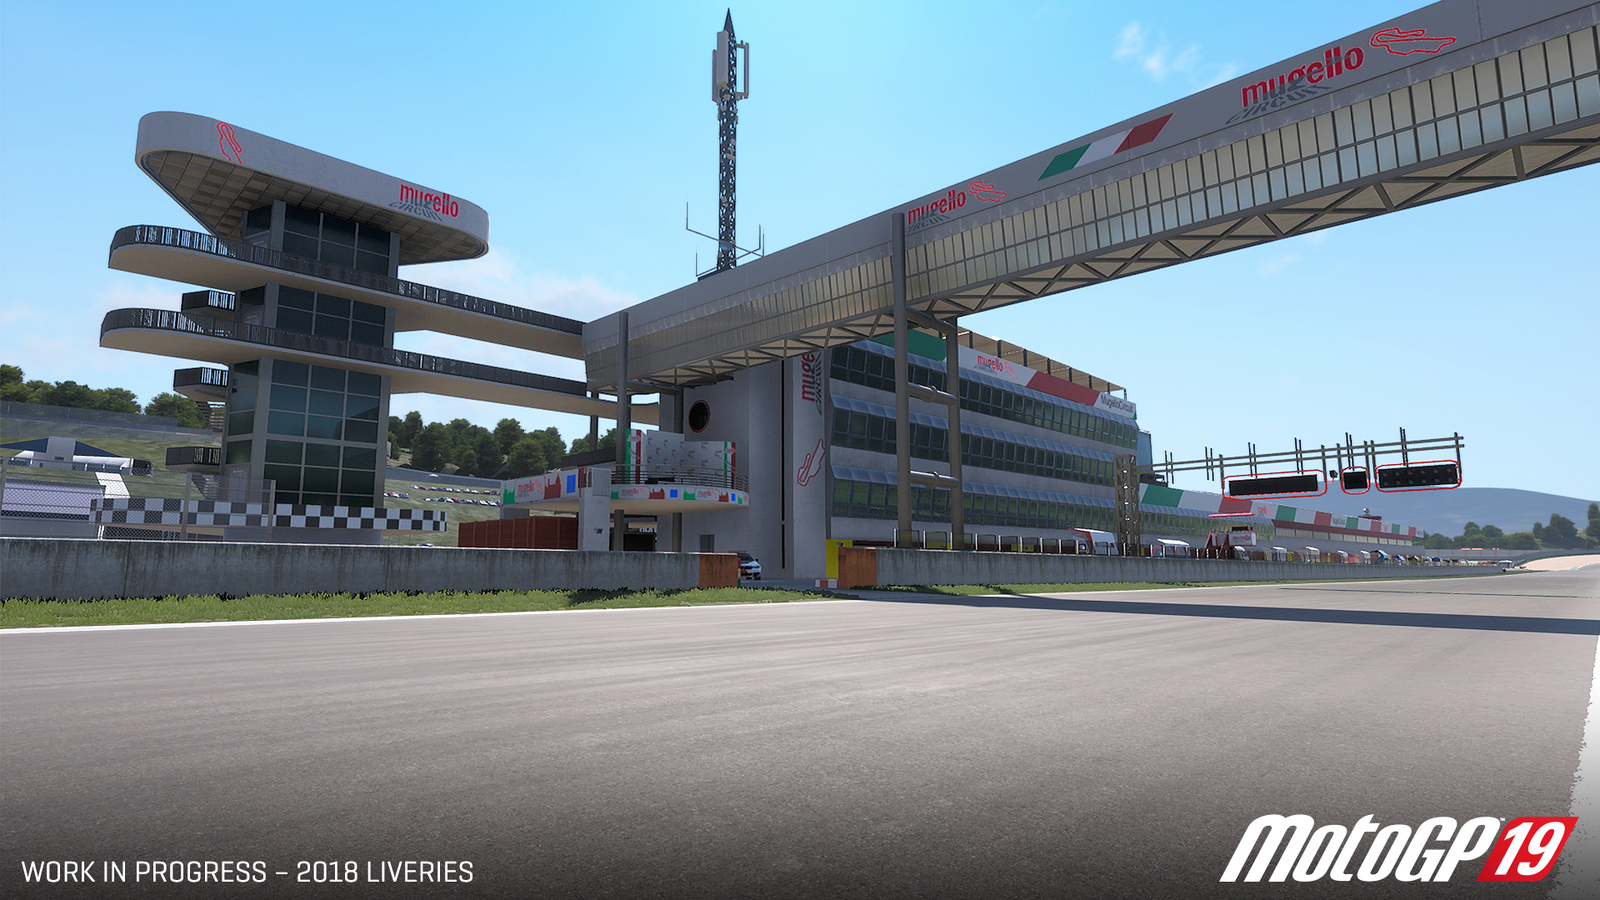 MotoGP19 for PS4 image